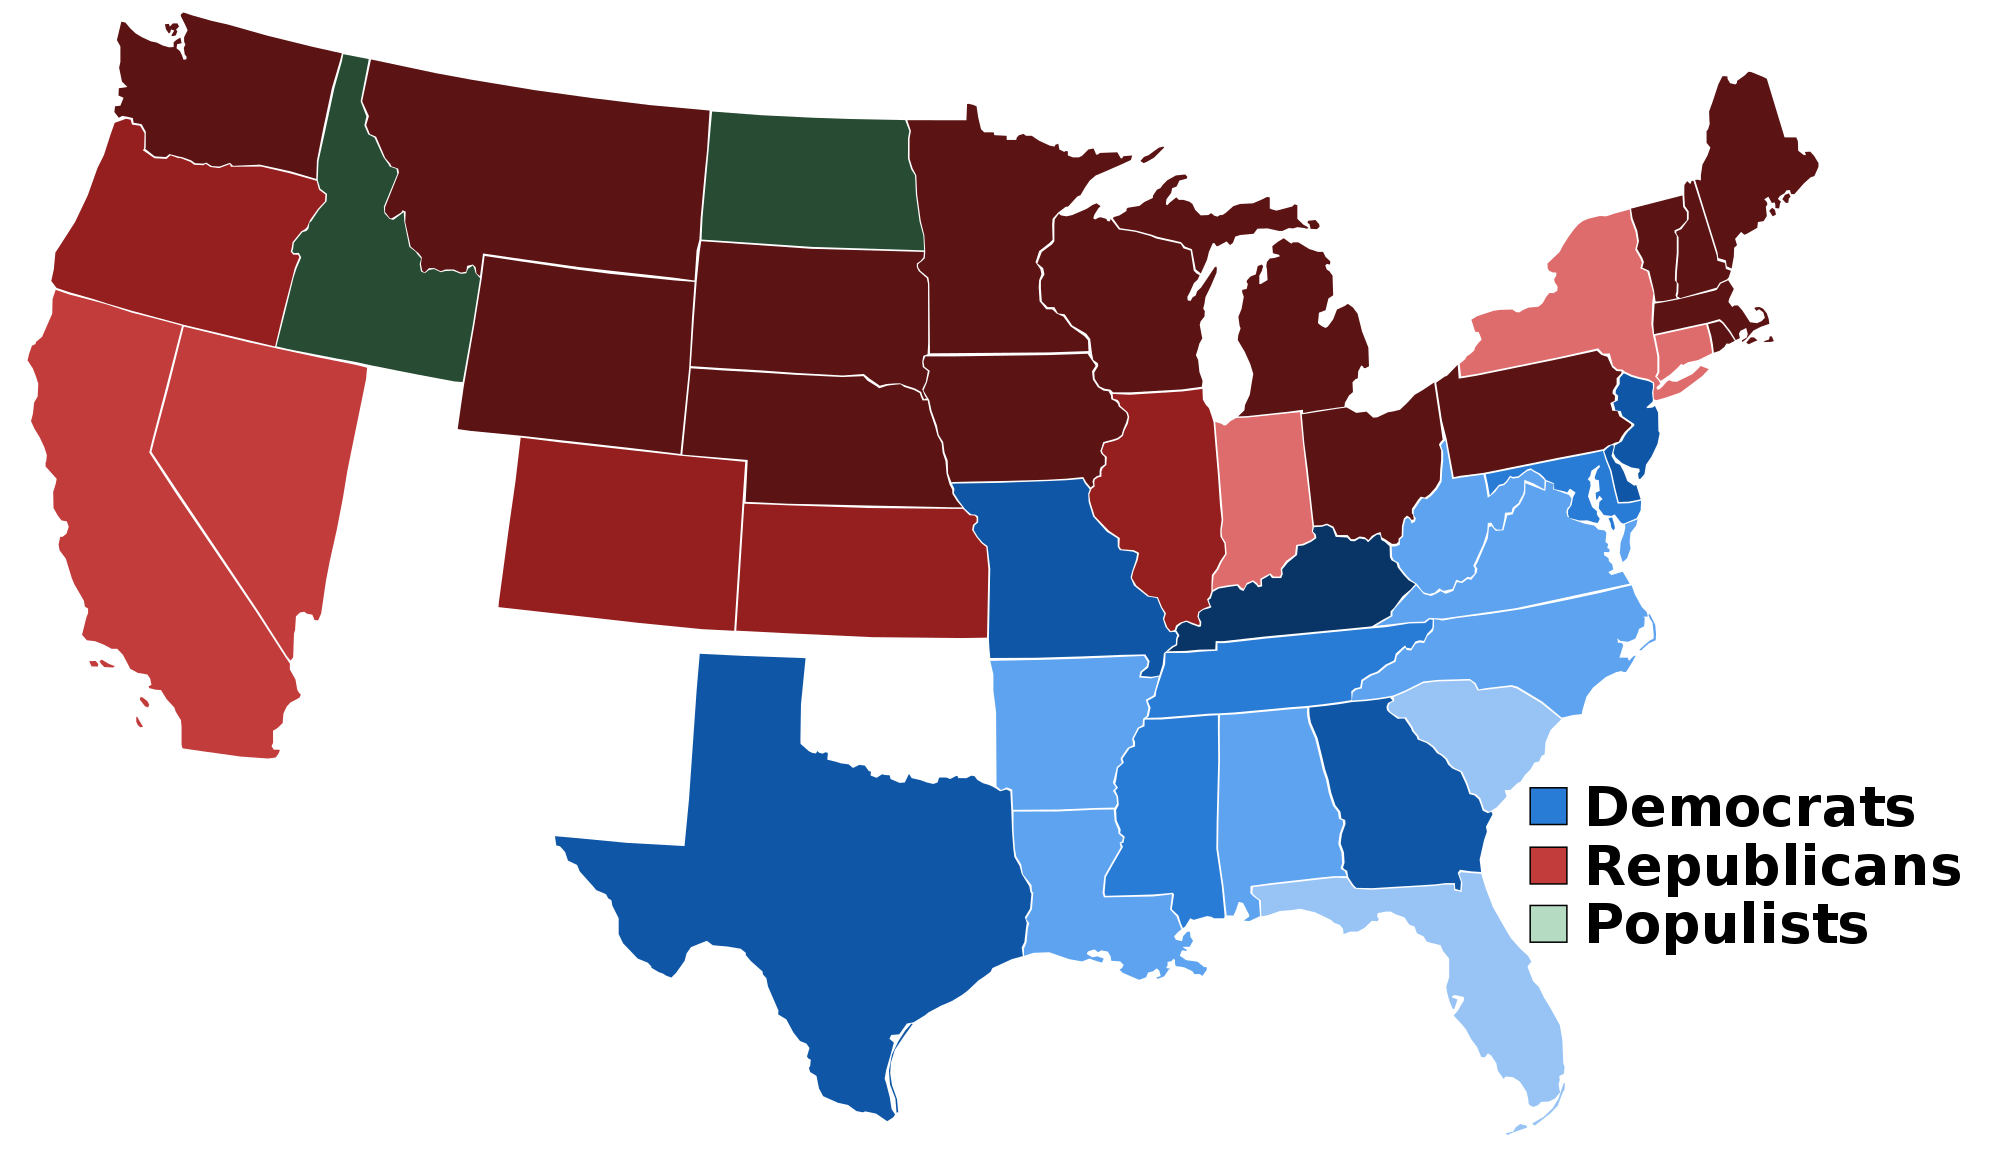 United States Presidential Election Results From 1856 To 1892 Maps - Us-election-results-state-map